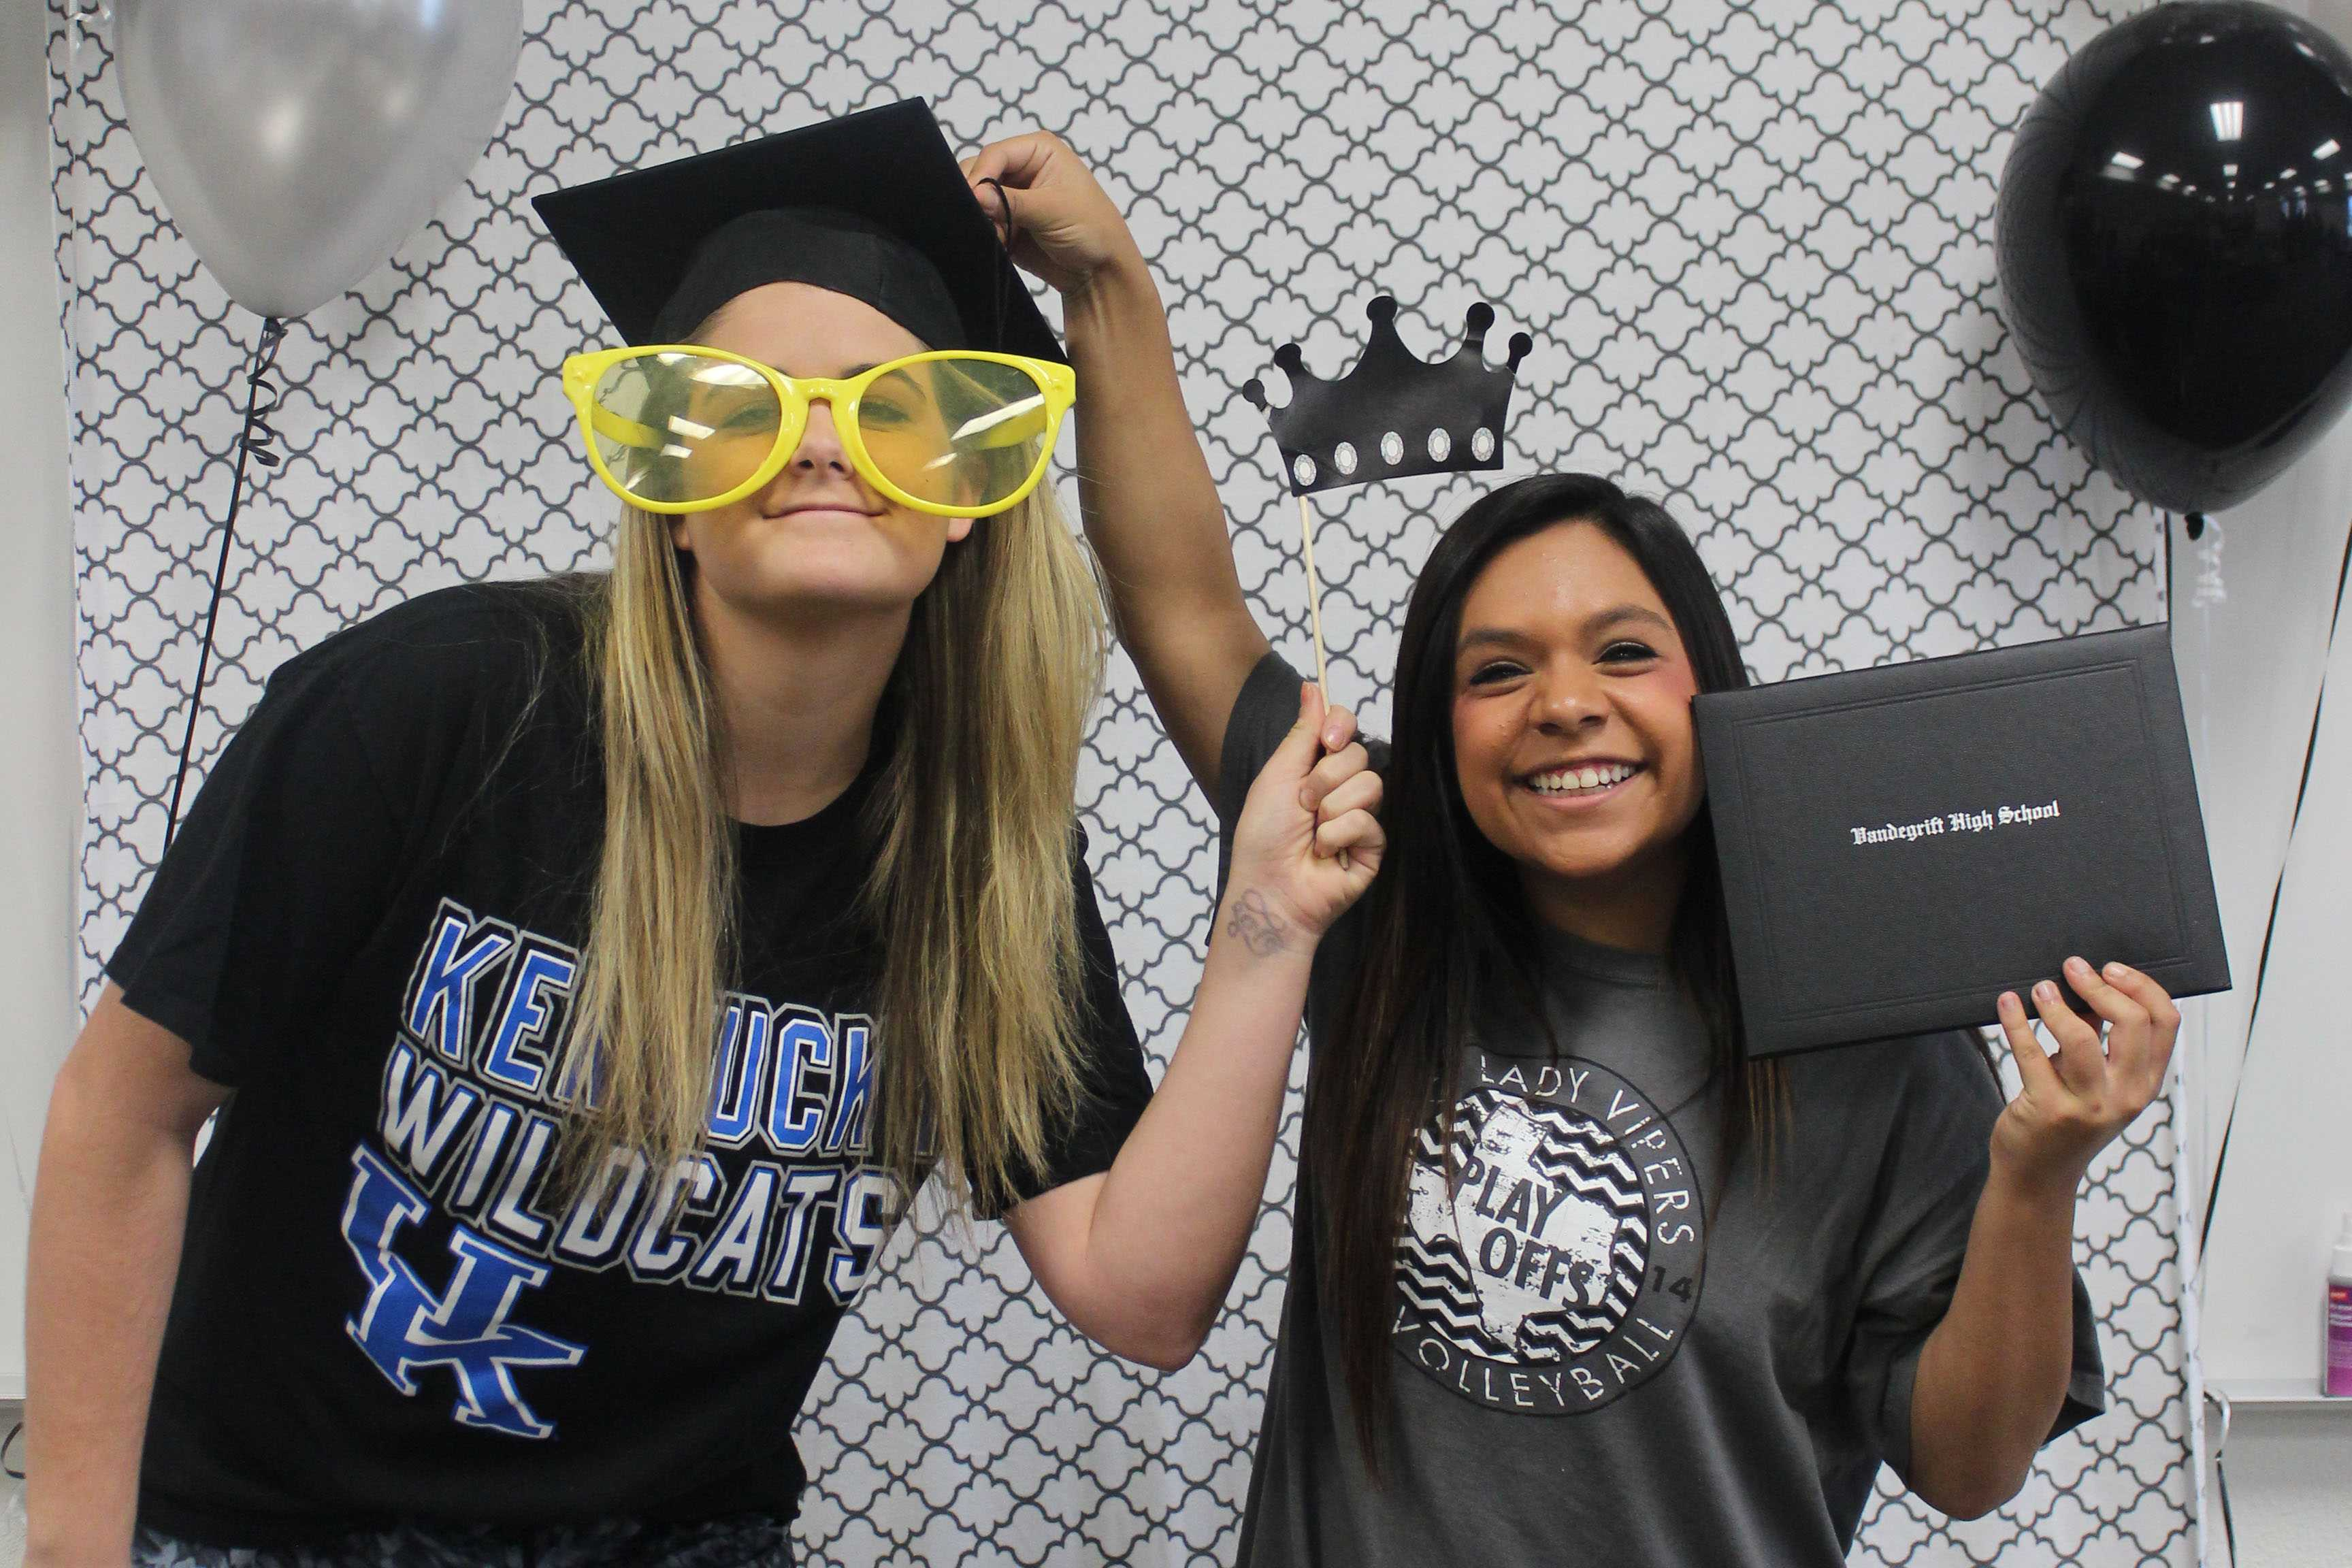 Seniors Morgan Waggoner and Kriston Guerra pose for available photo booth at The Cookies for College event.